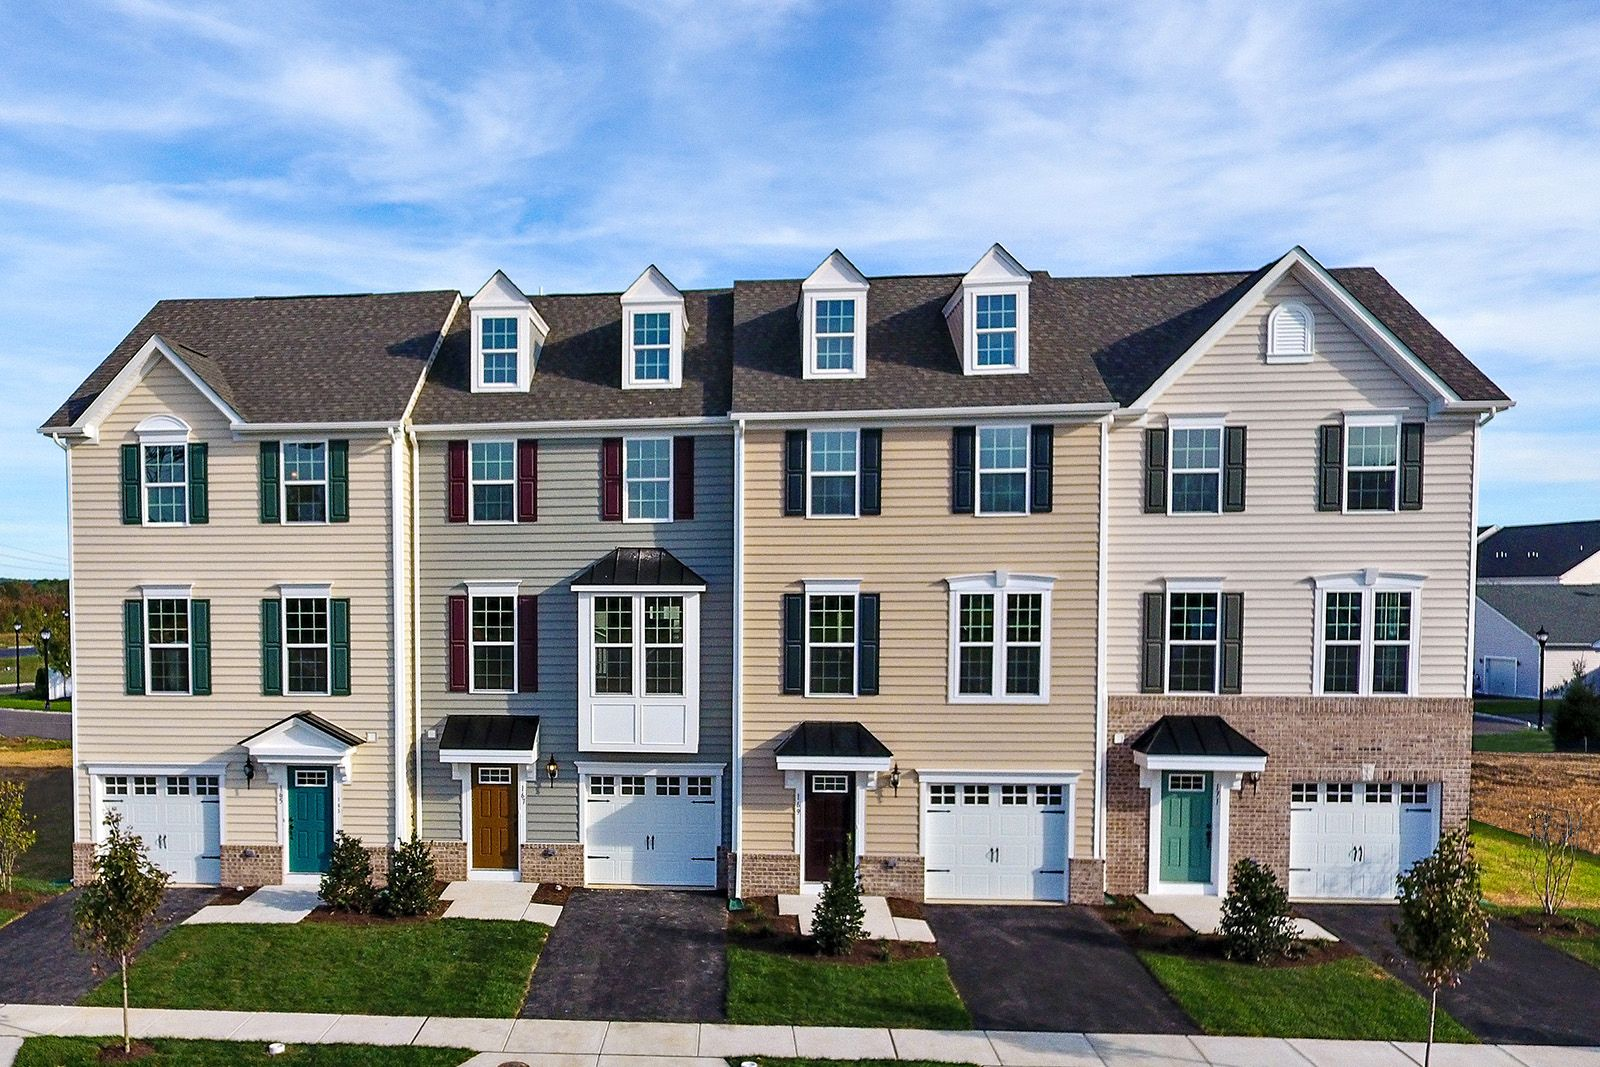 Welcome Home:Own for less than rent at the lowest-priced 3-bedroom townhomes near Swedesboro's charming shops and restaurants, 3 miles from I-295.Click here to schedule an appointment!